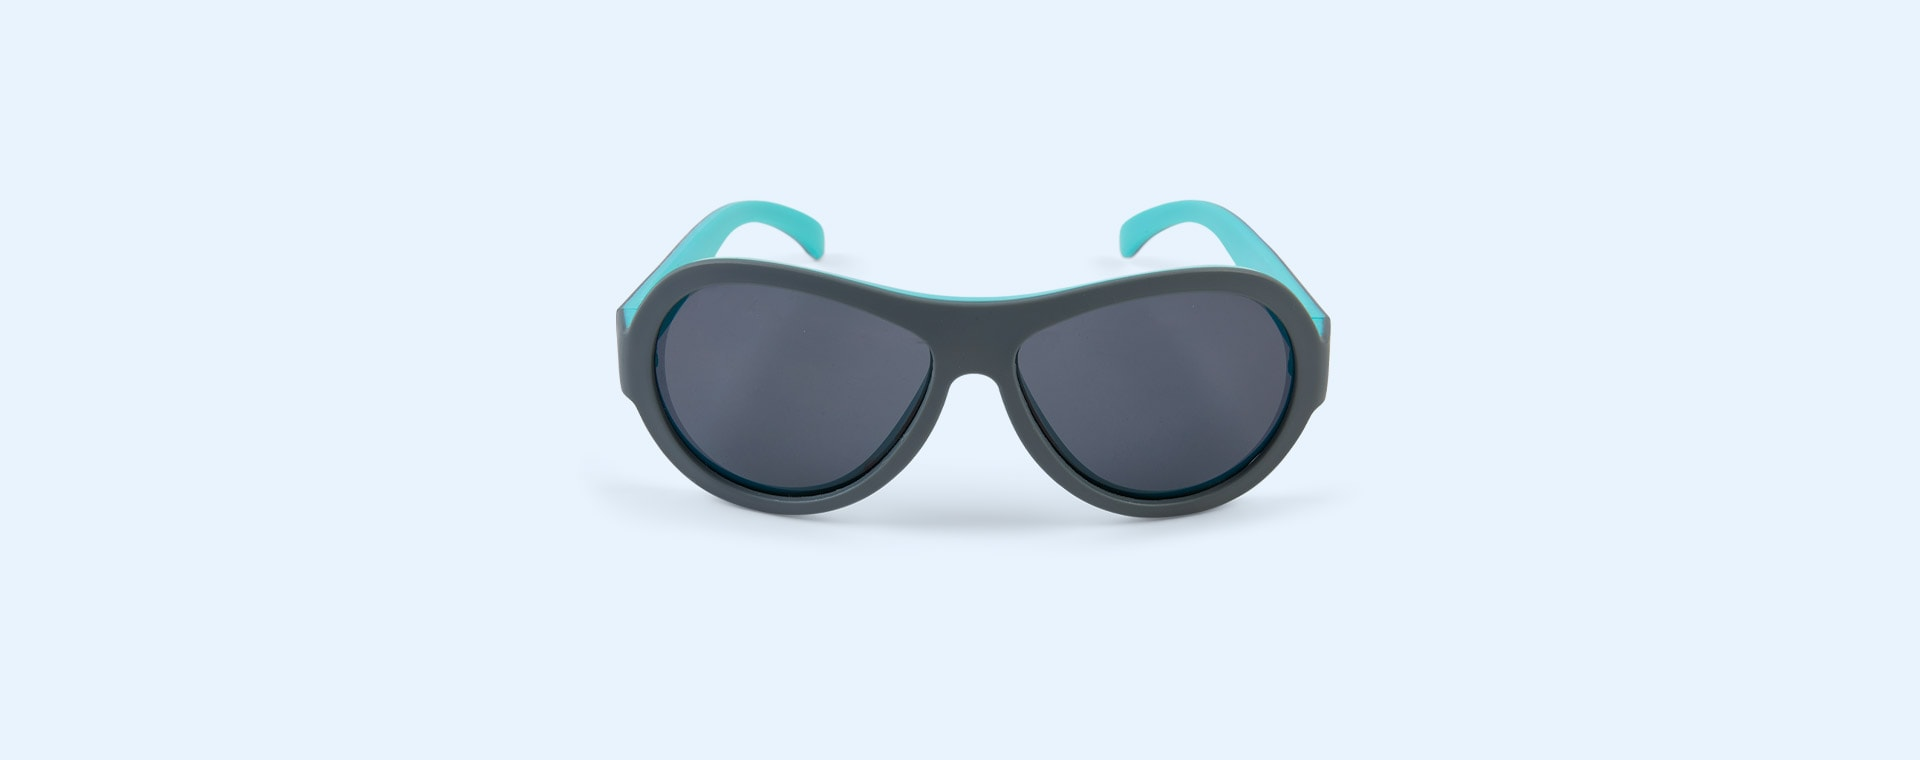 Sea Spray Babiators Aviator Sunglasses